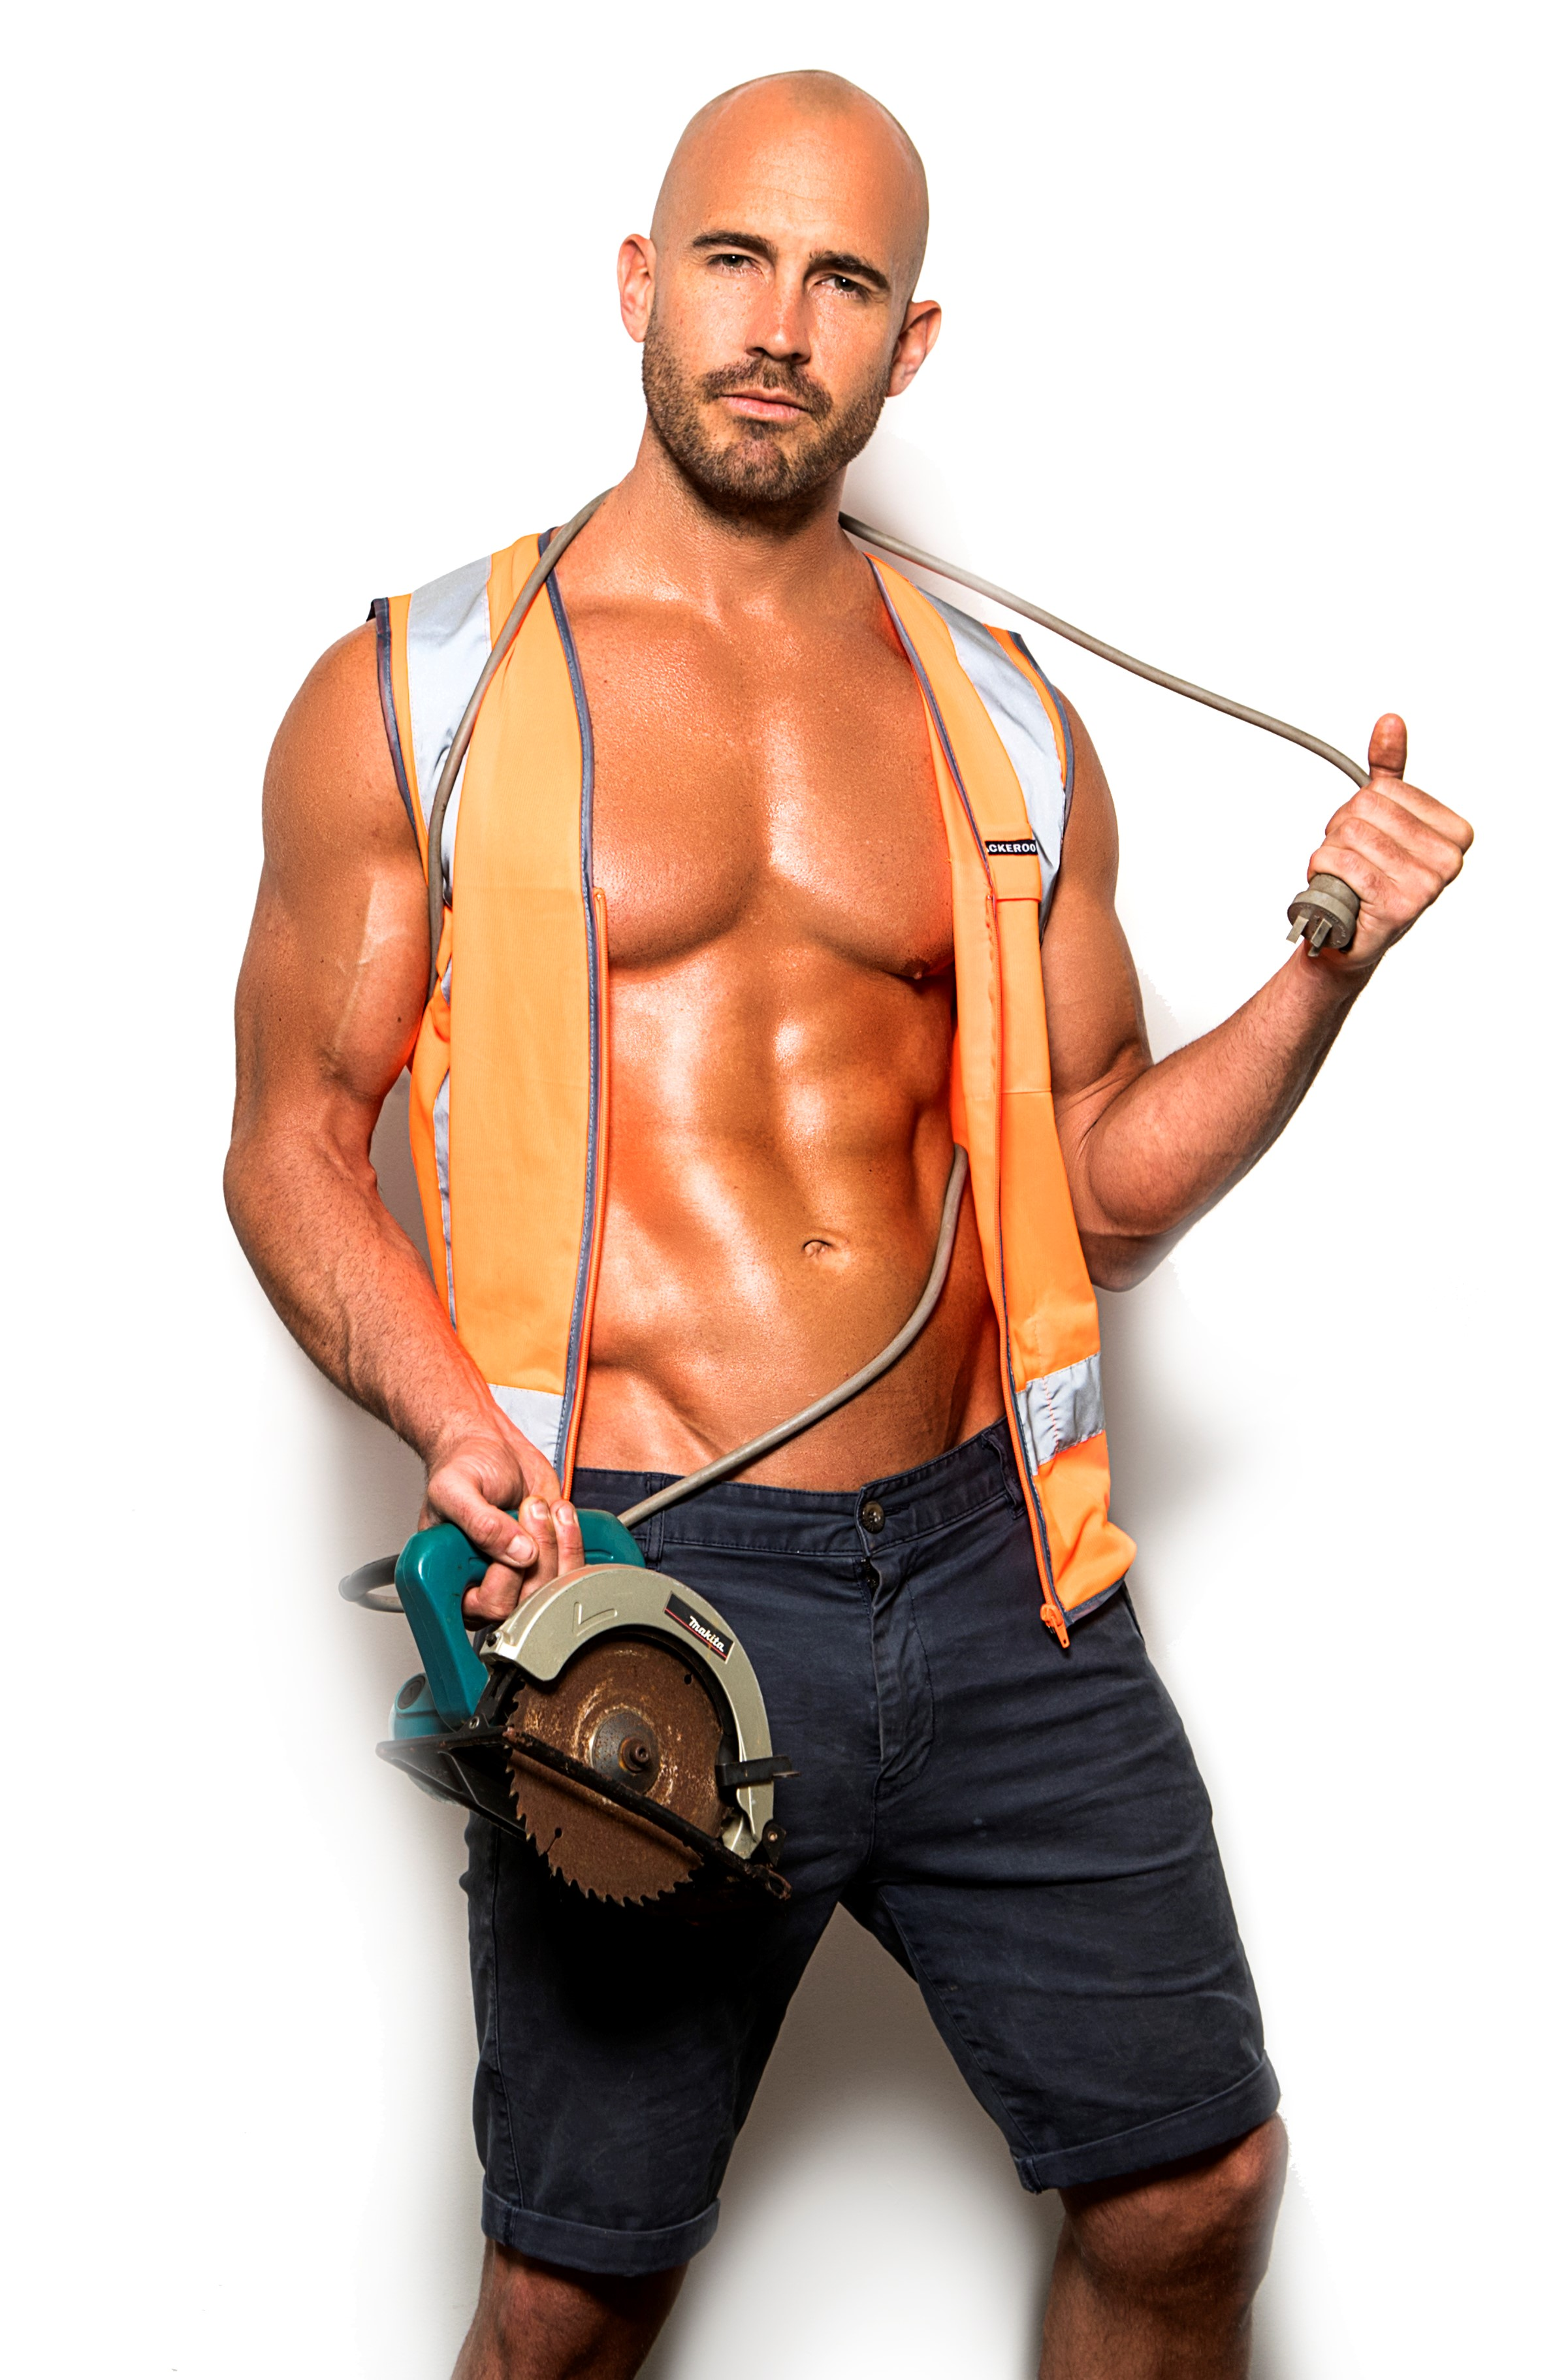 topless butler for hire, hens party, hens night, birthday party.